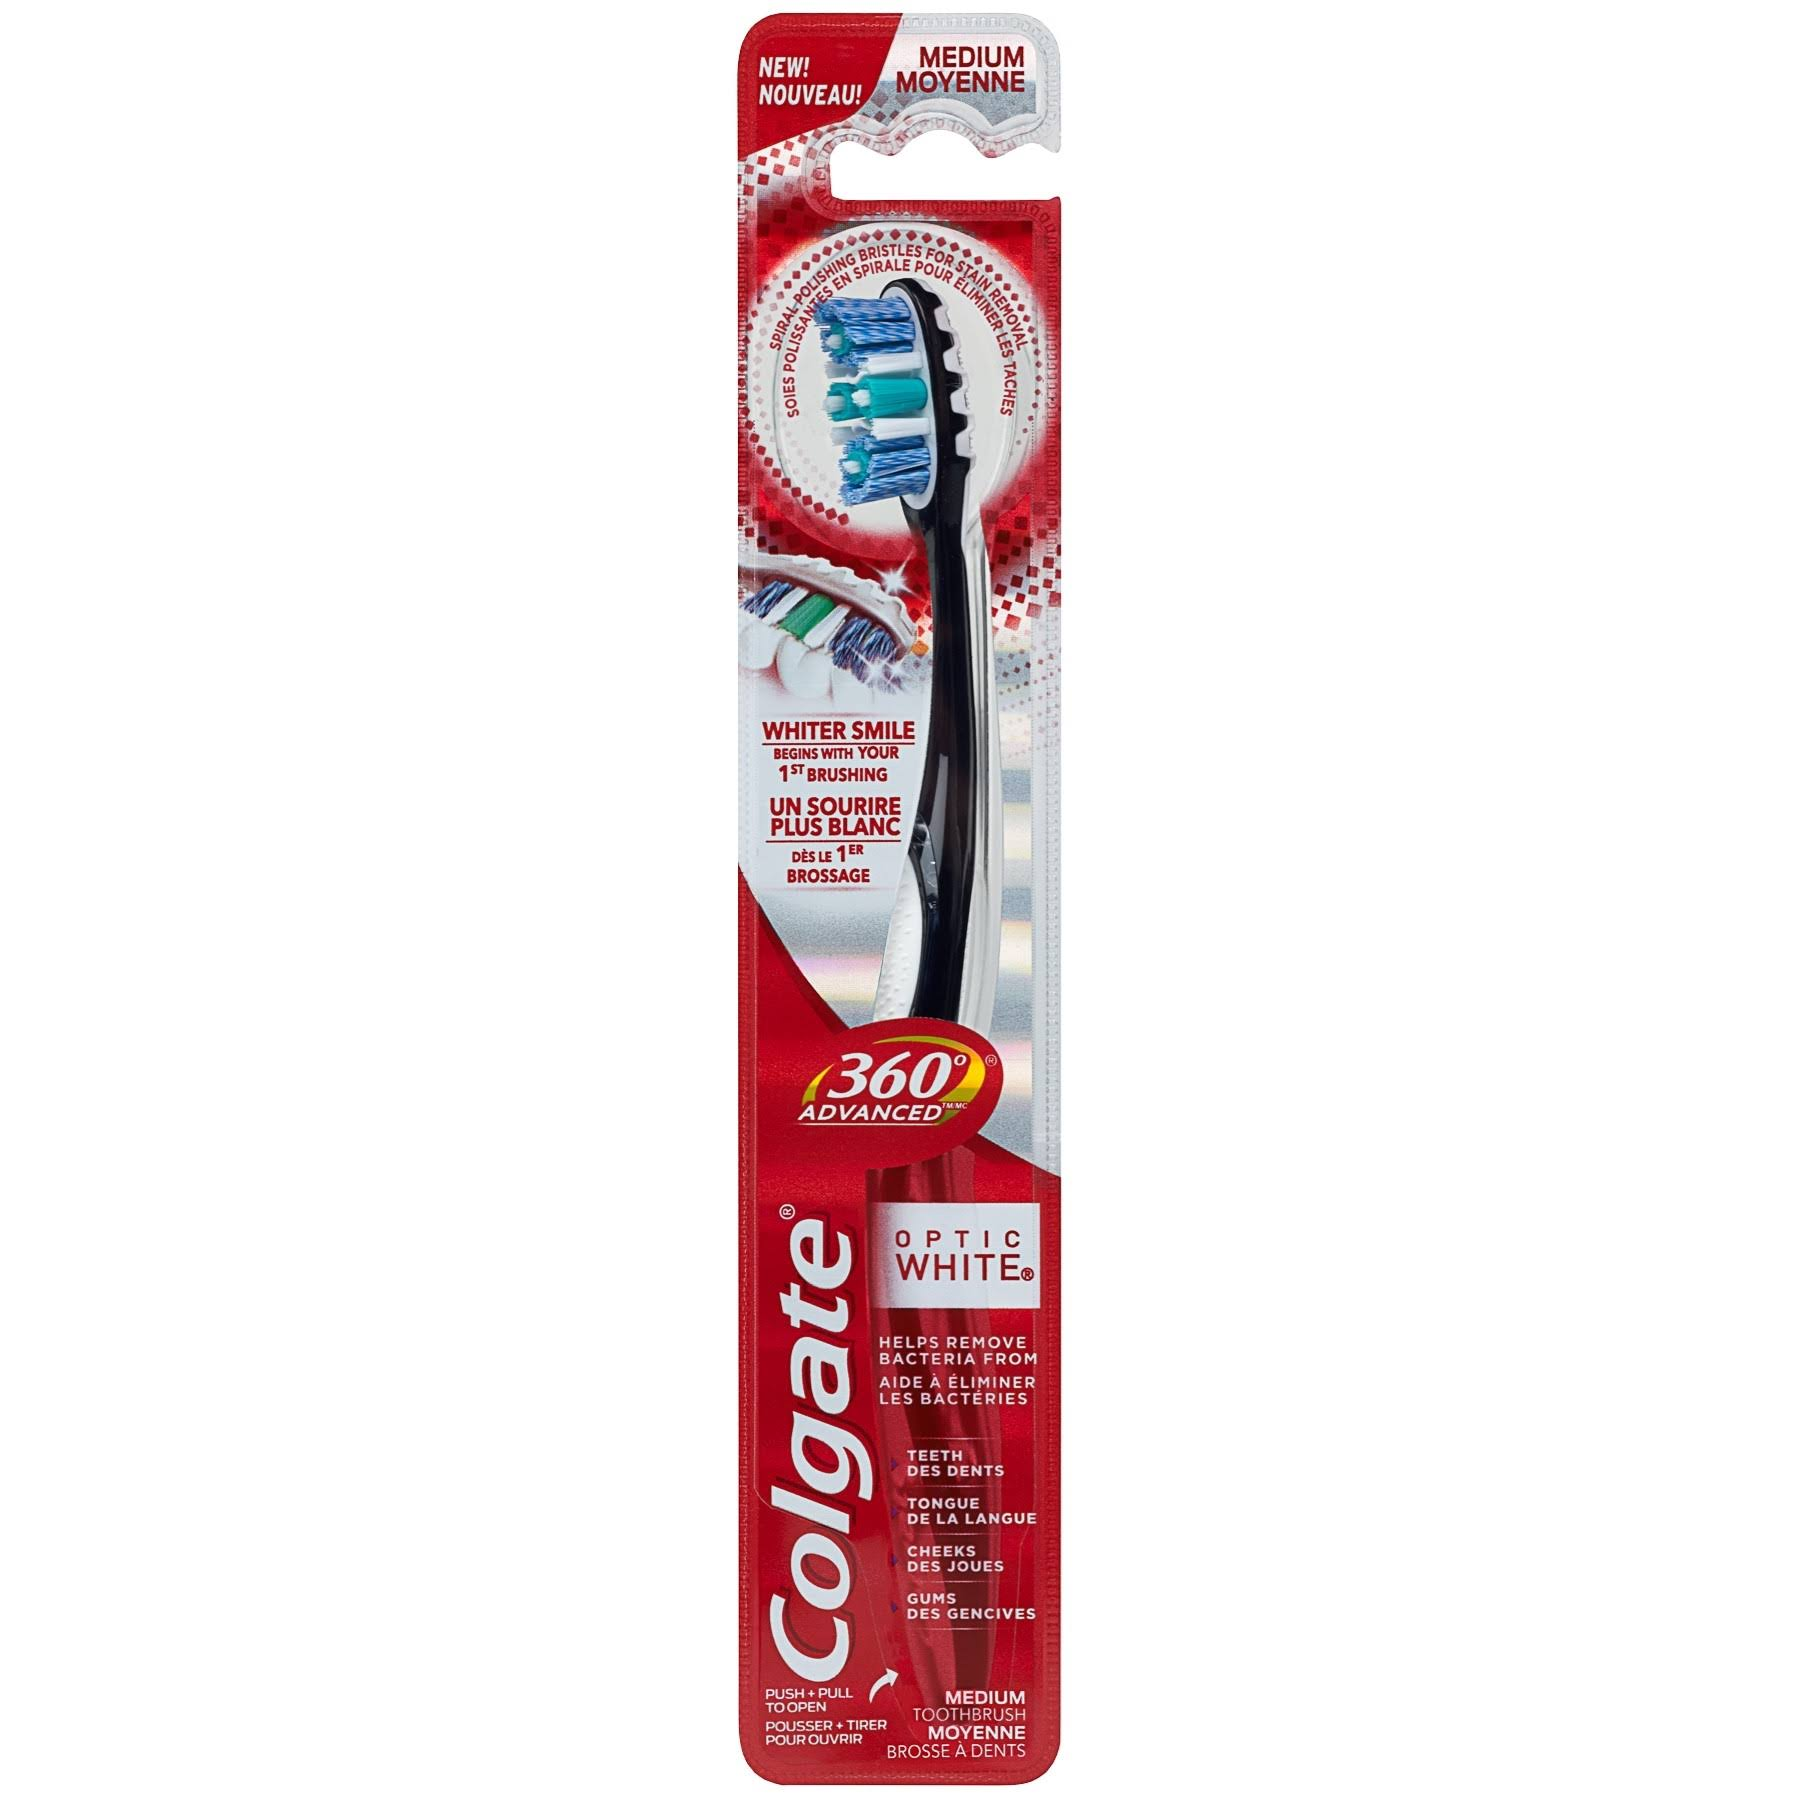 Colgate 360 Advanced Optic White Toothbrush - Medium